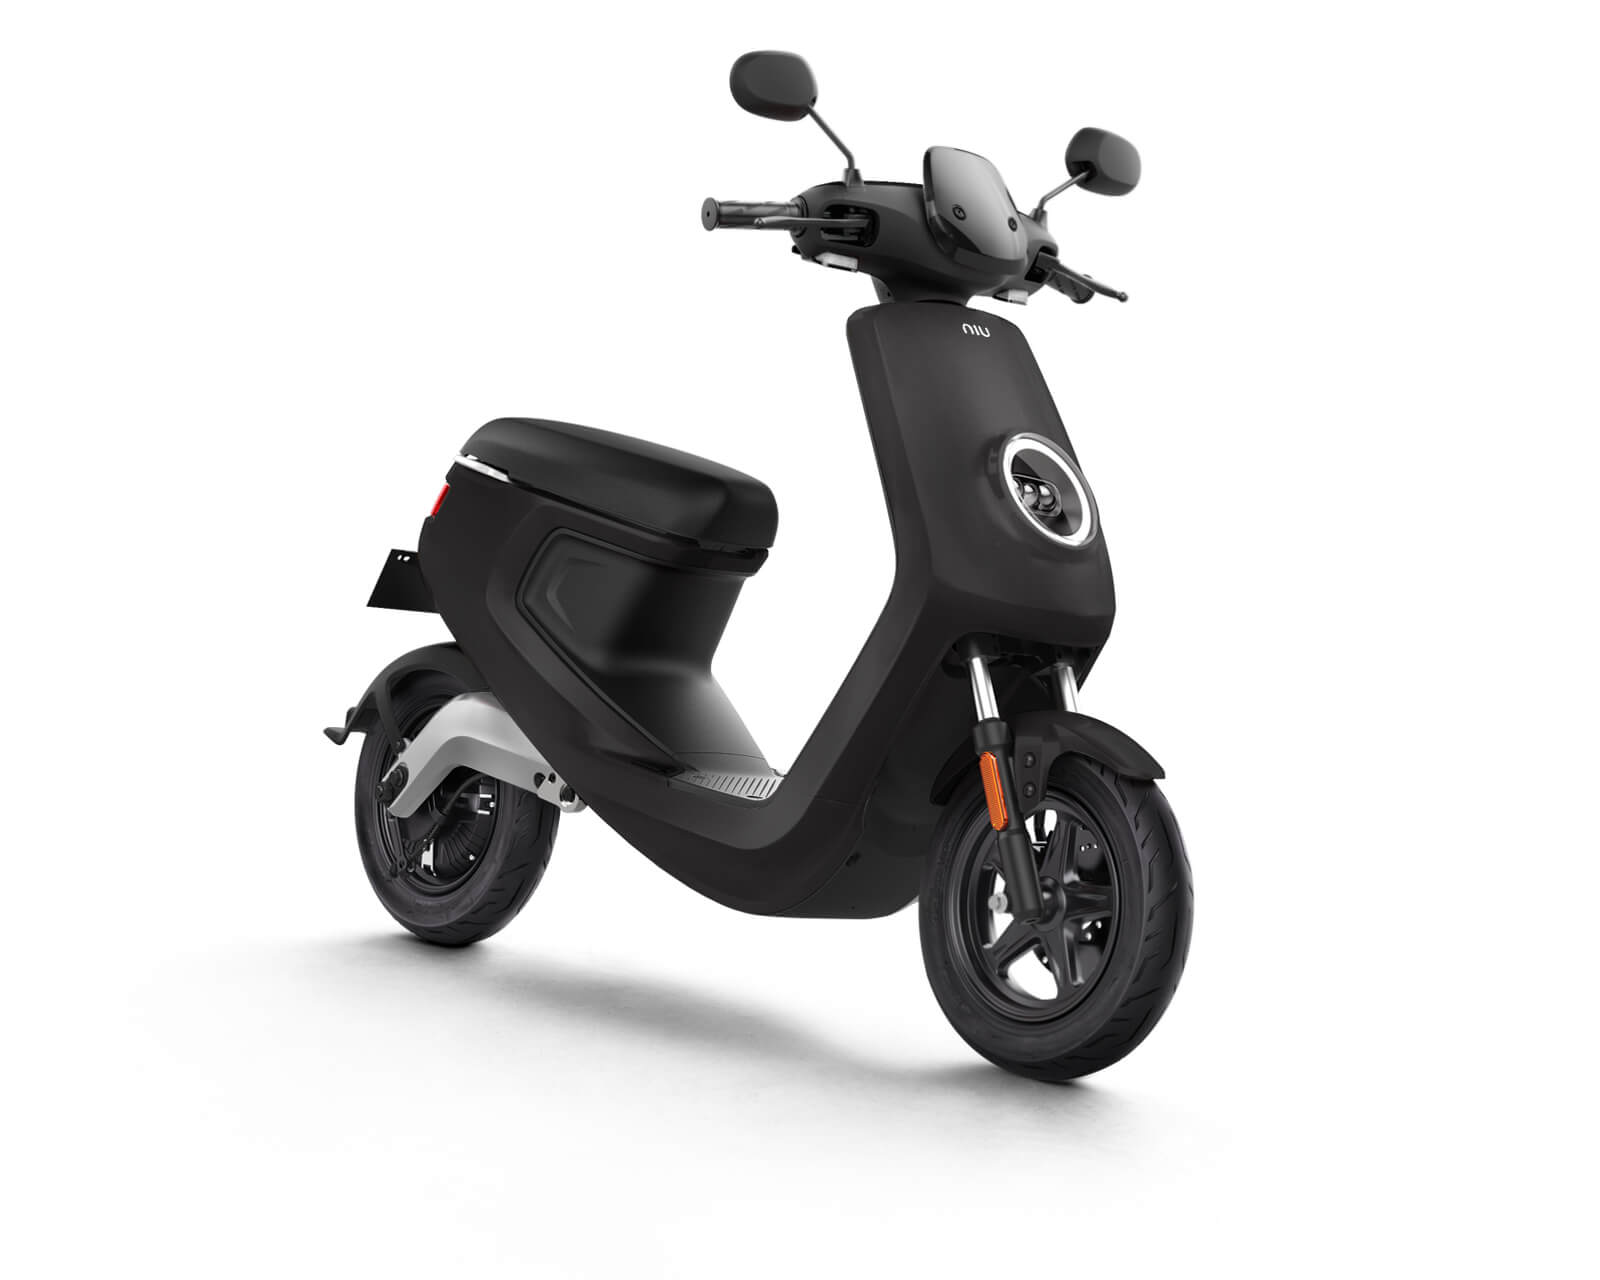 niu m series smart electric scooter. Black Bedroom Furniture Sets. Home Design Ideas